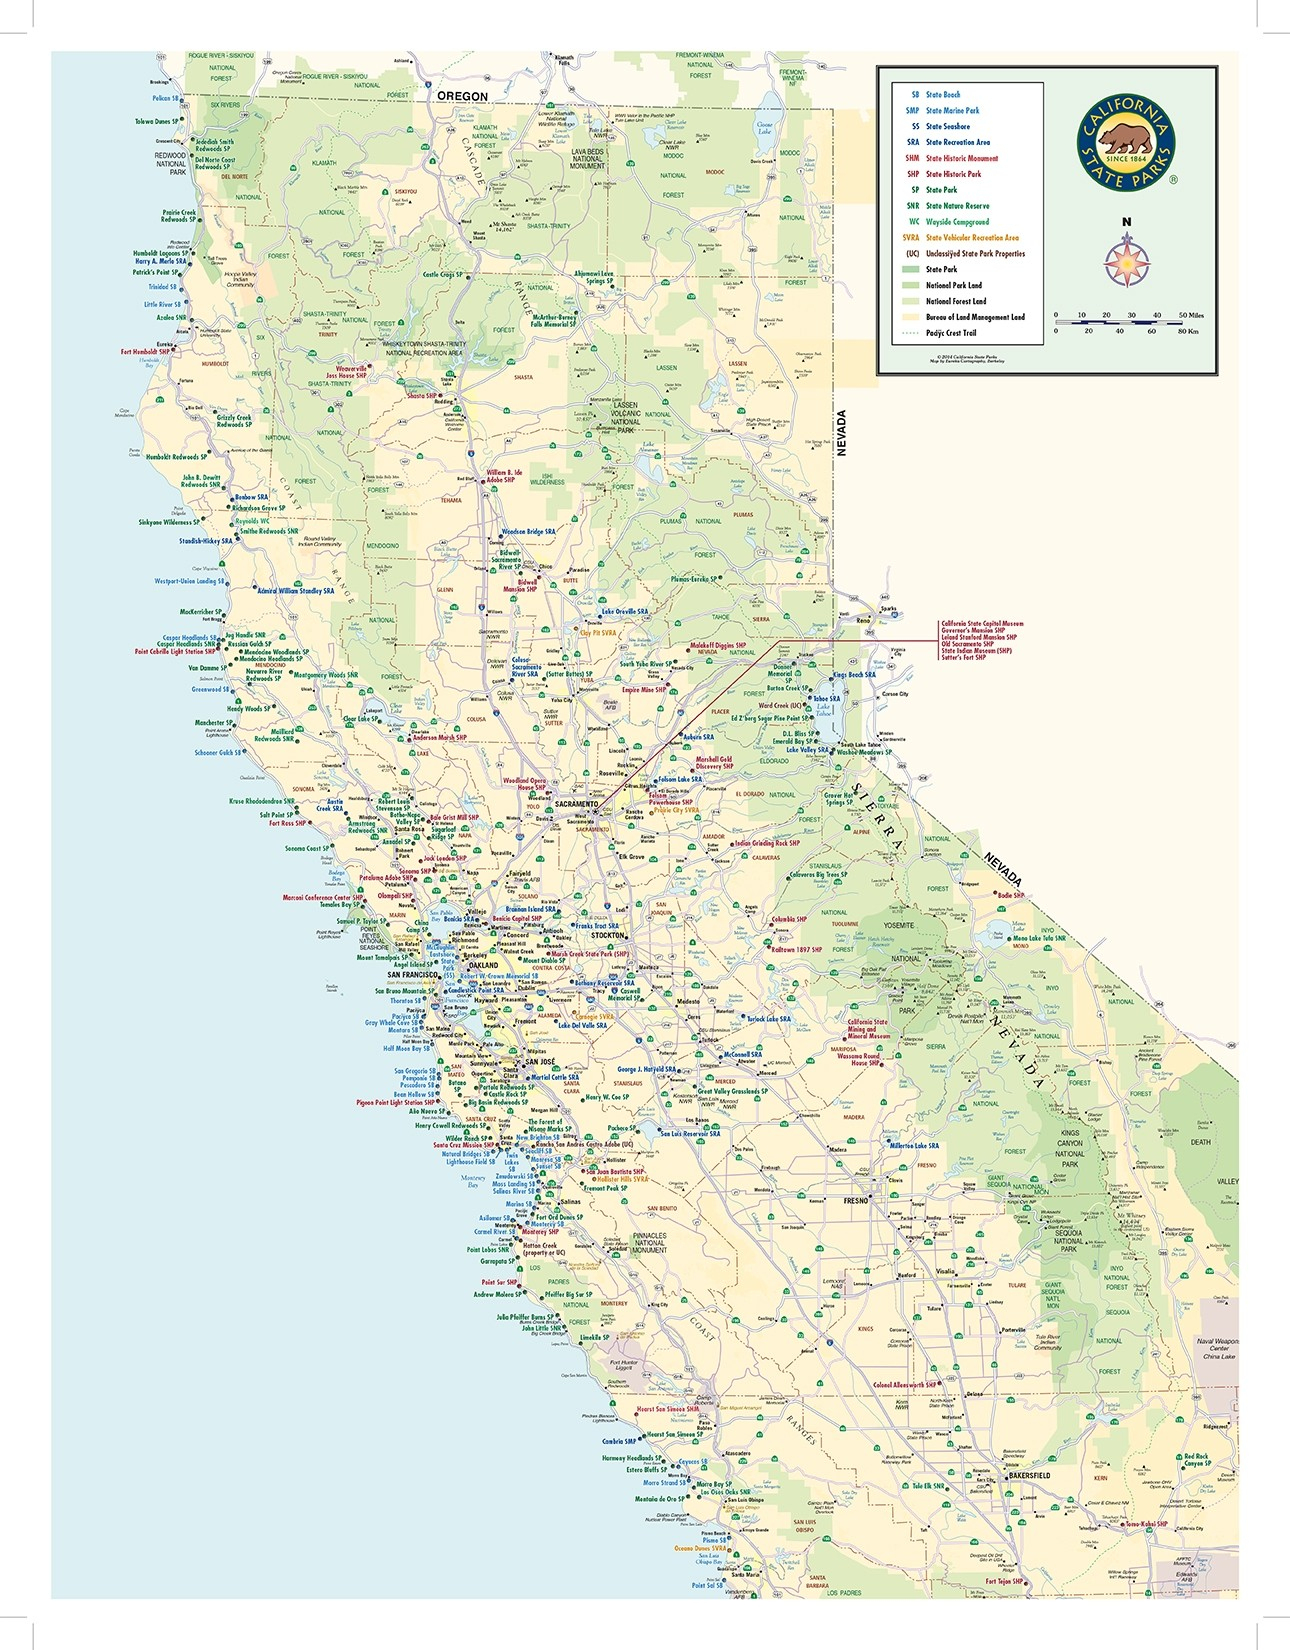 California State Parks Statewide Map - California State Parks Map